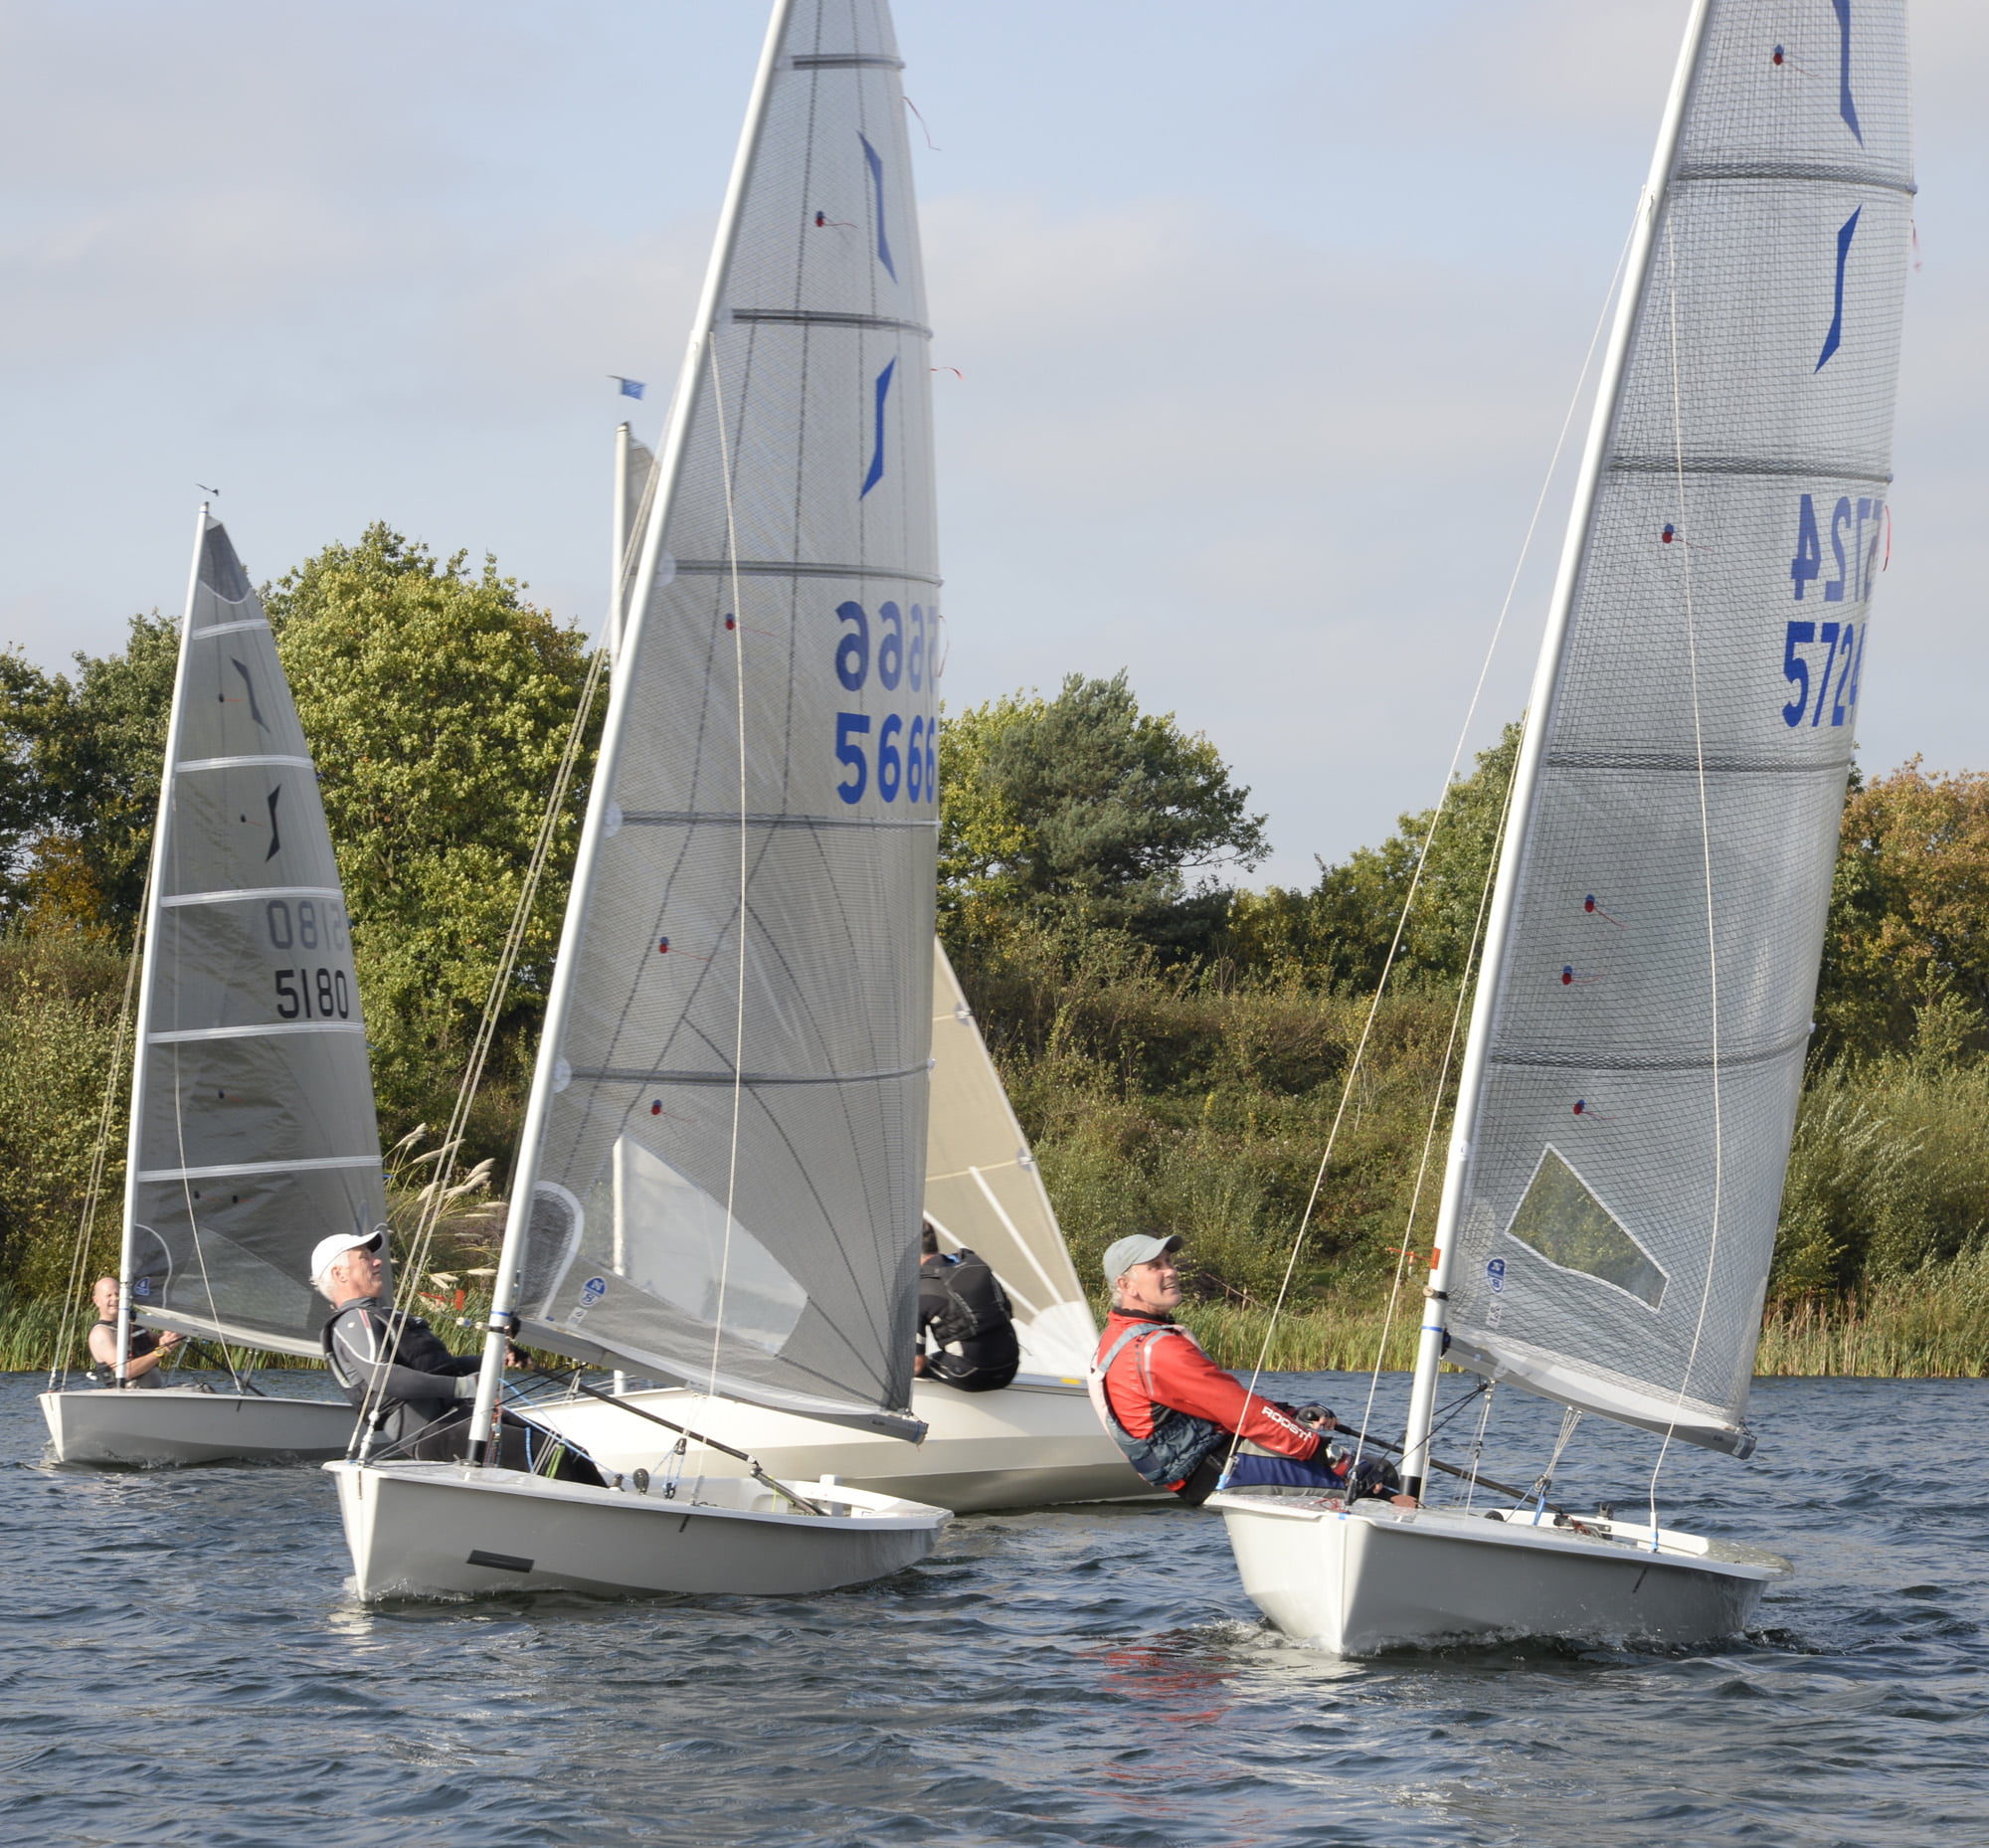 Solo Class At Papercourt Papercourt Sailing Club